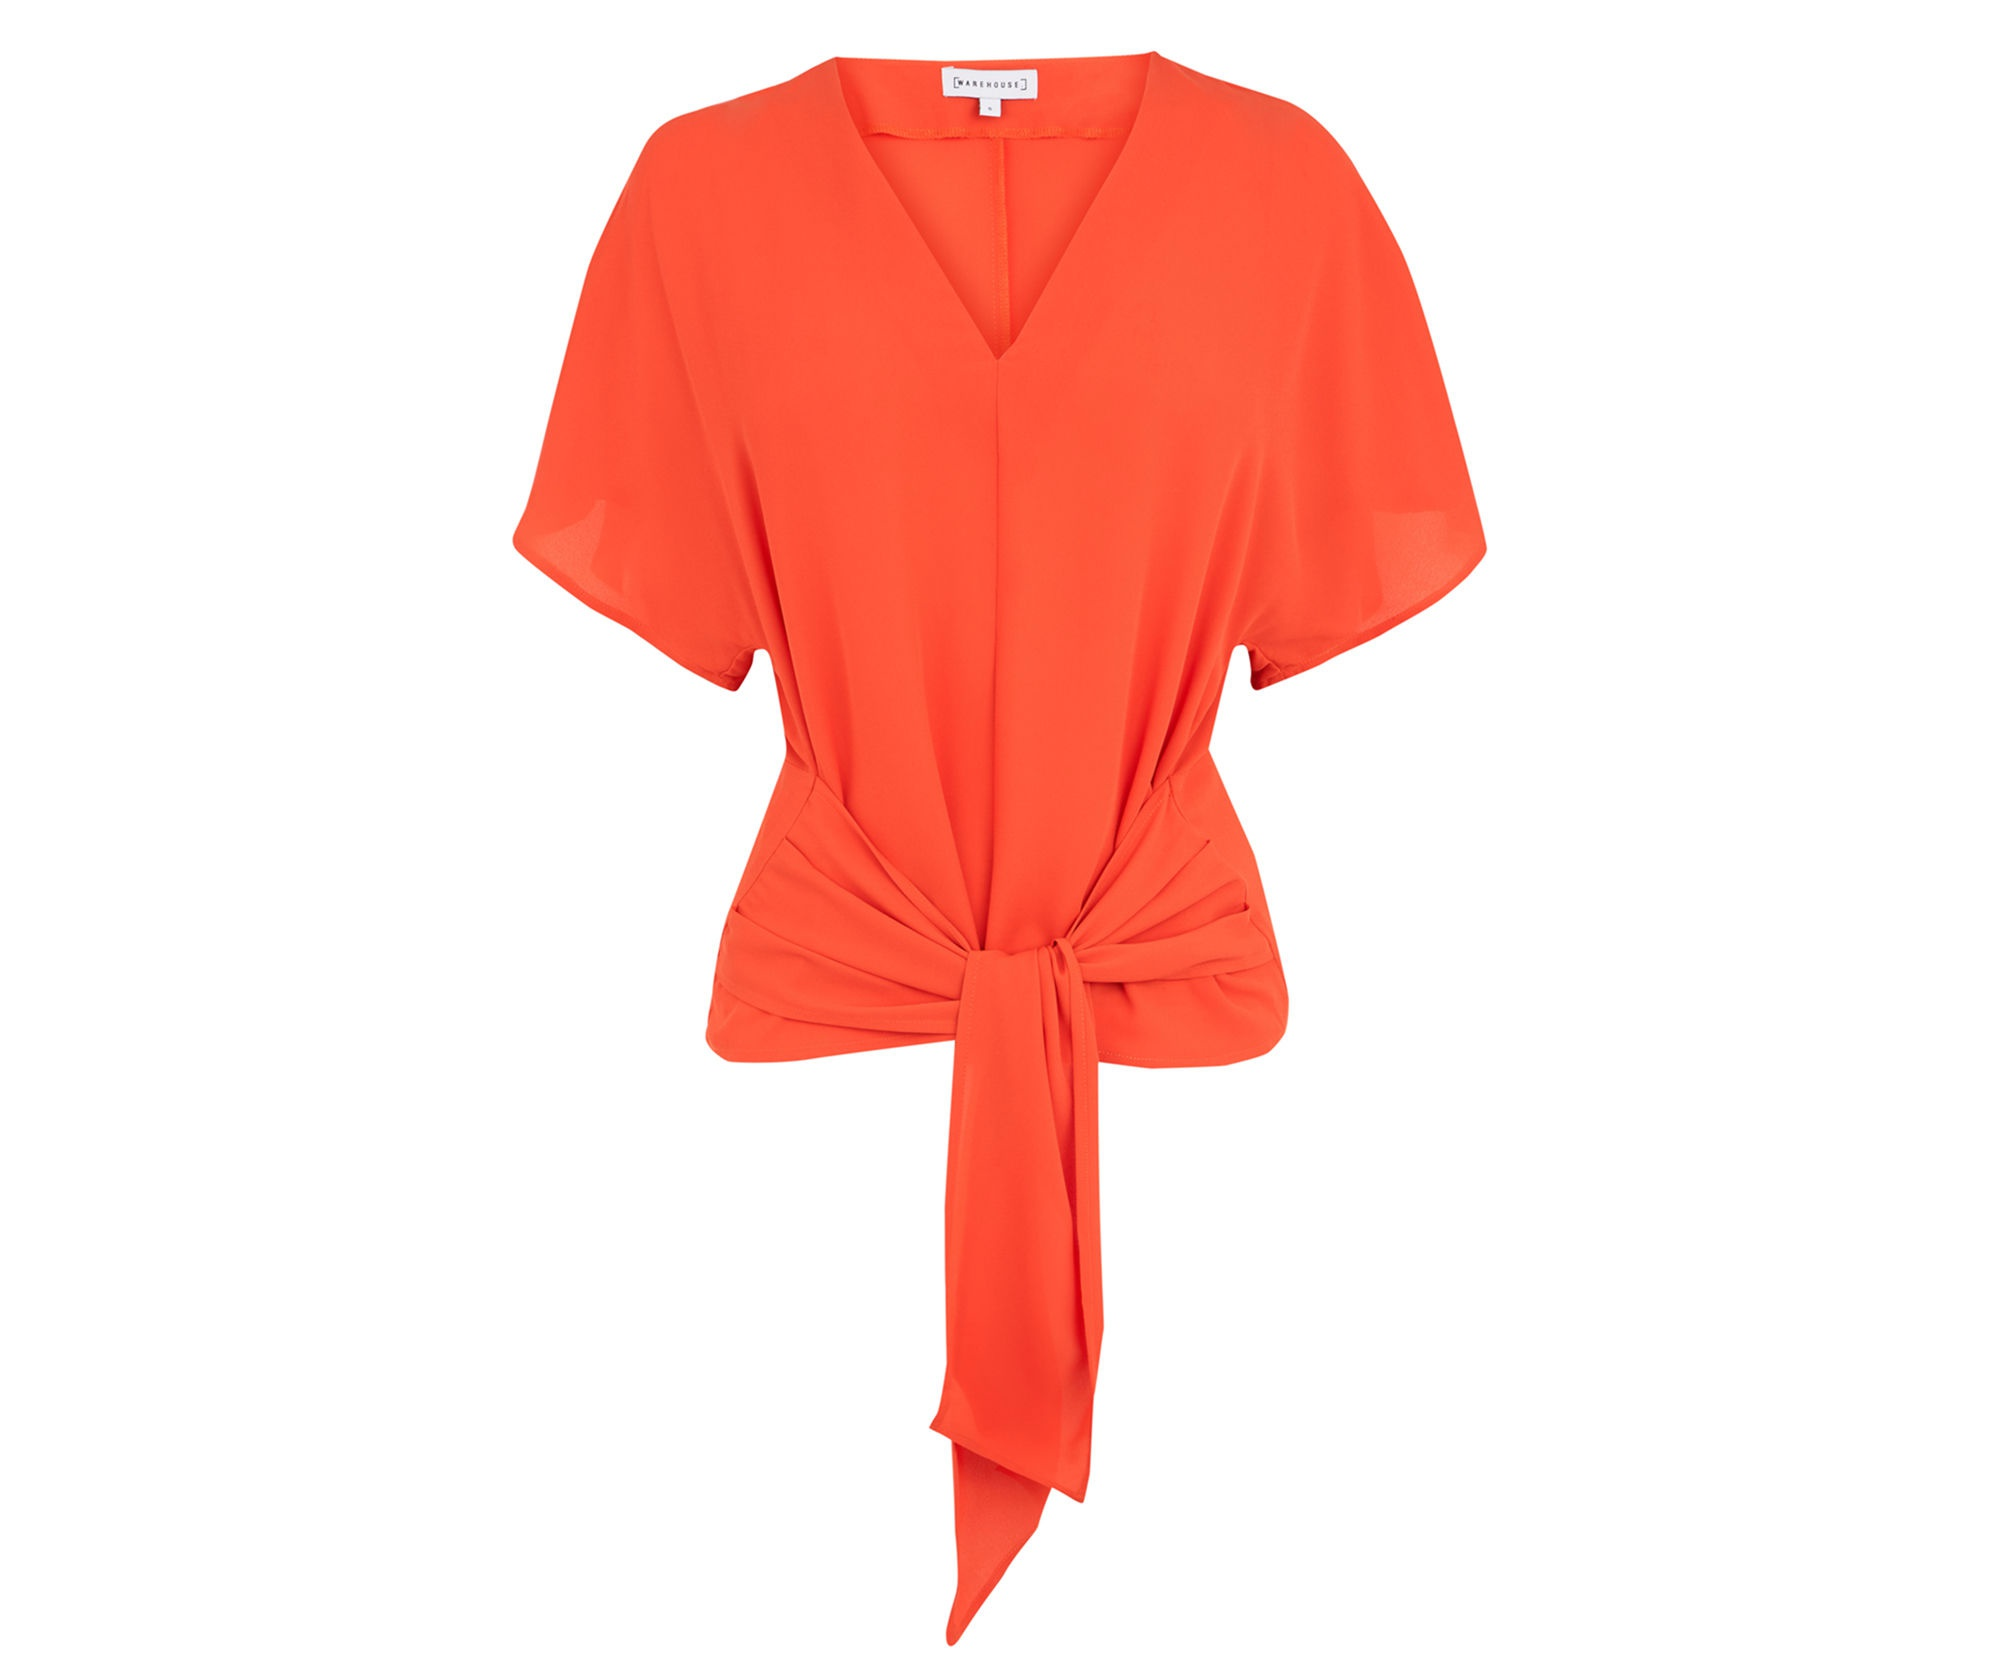 warehouse orange top